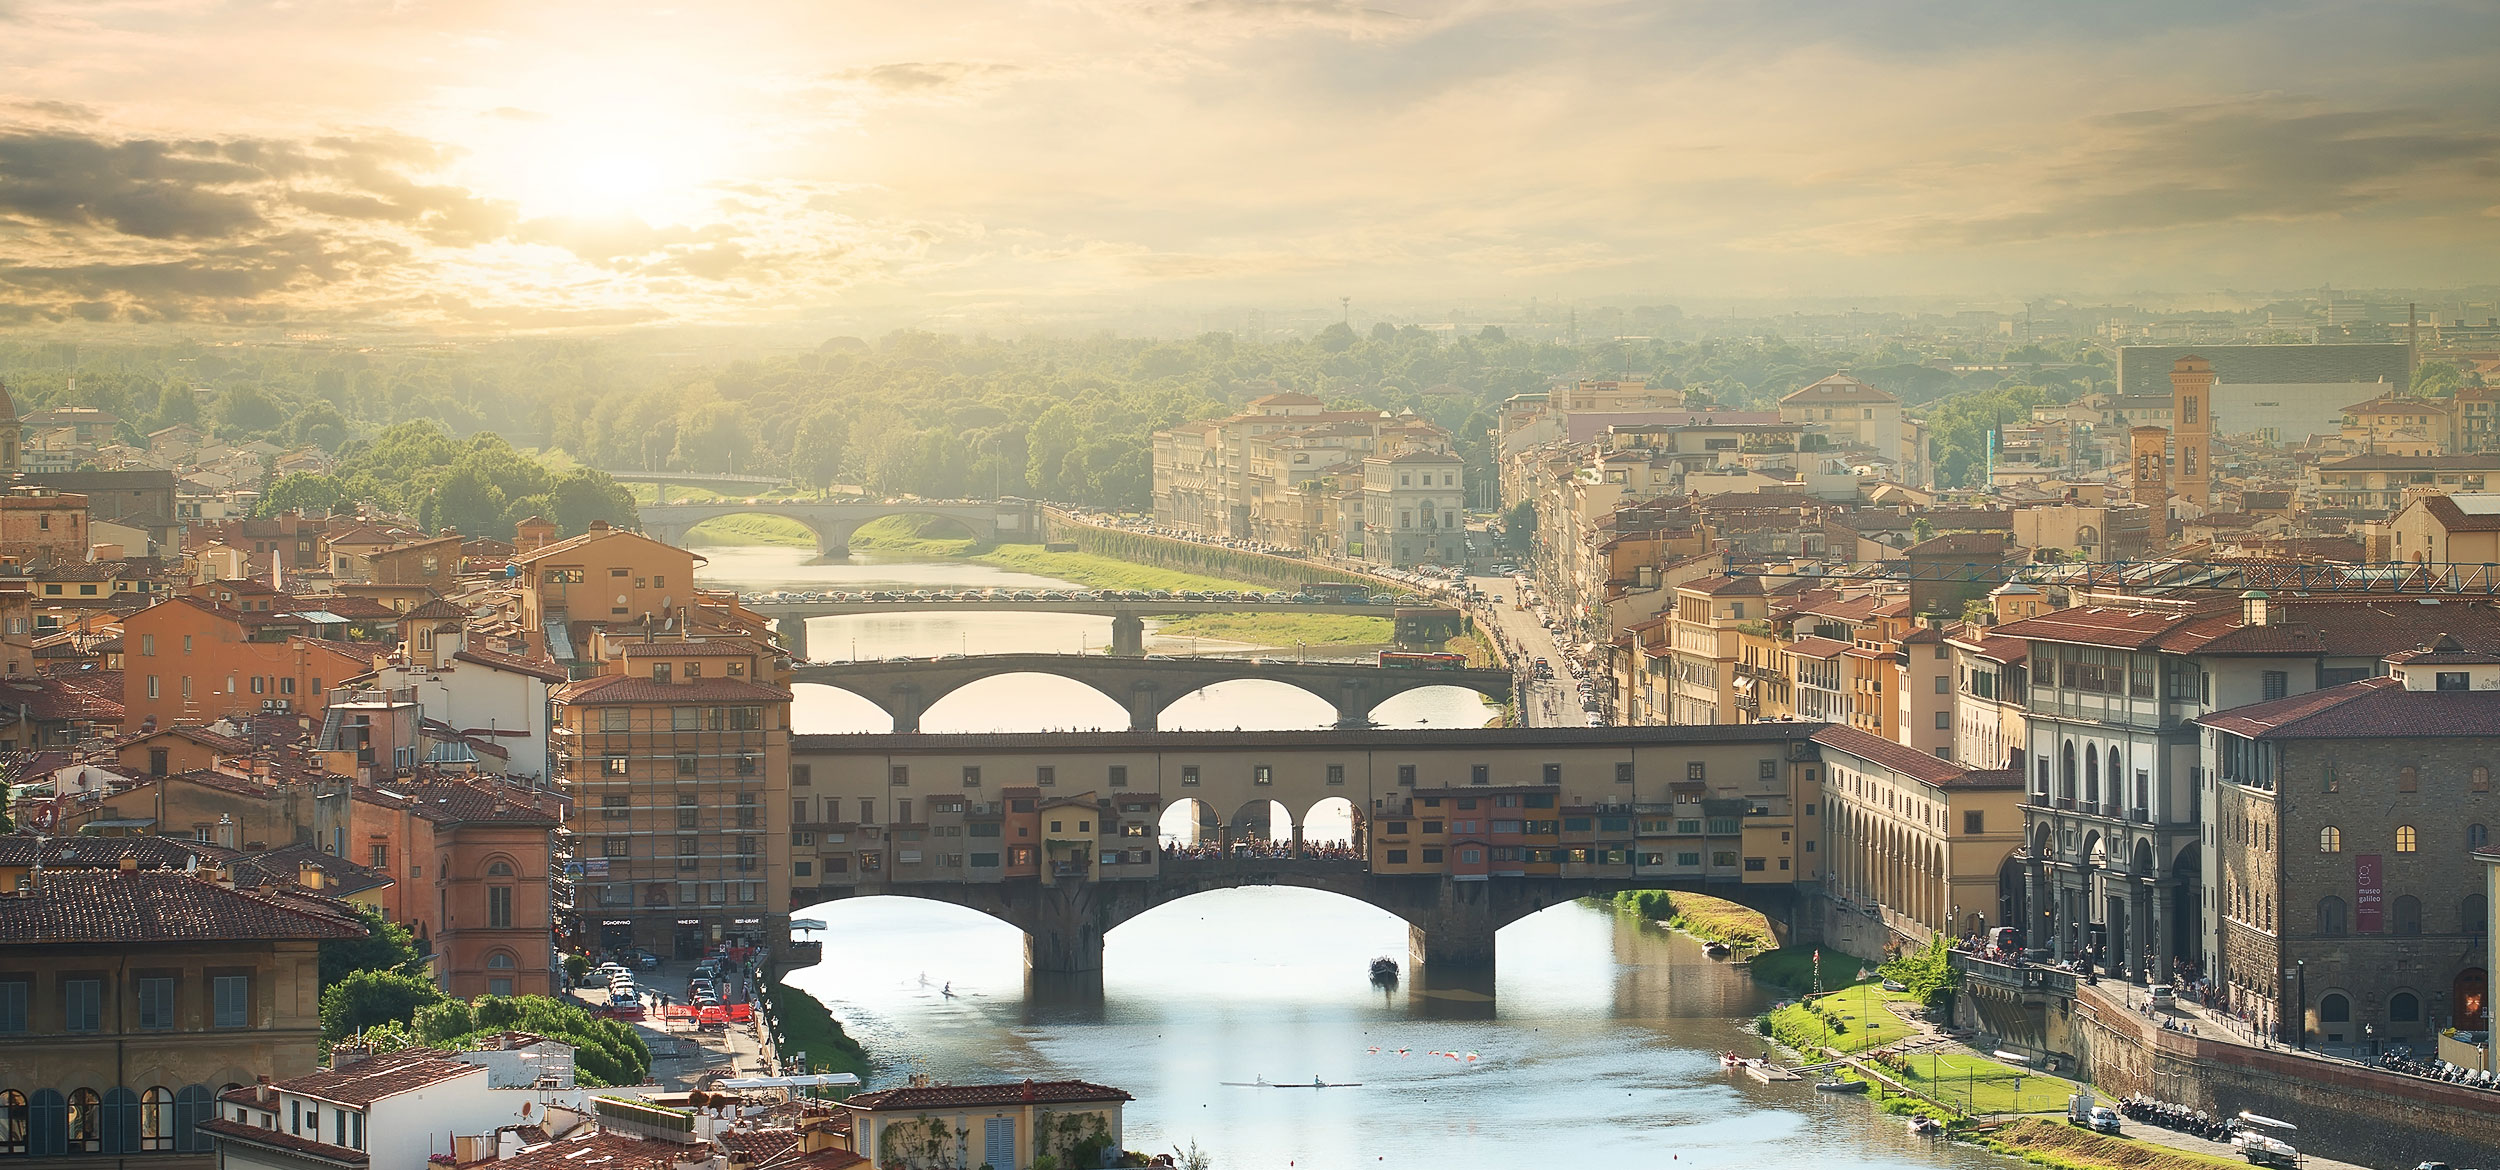 View of the Ponte Vecchio Bridge over the Arno River in Florence, Italy.